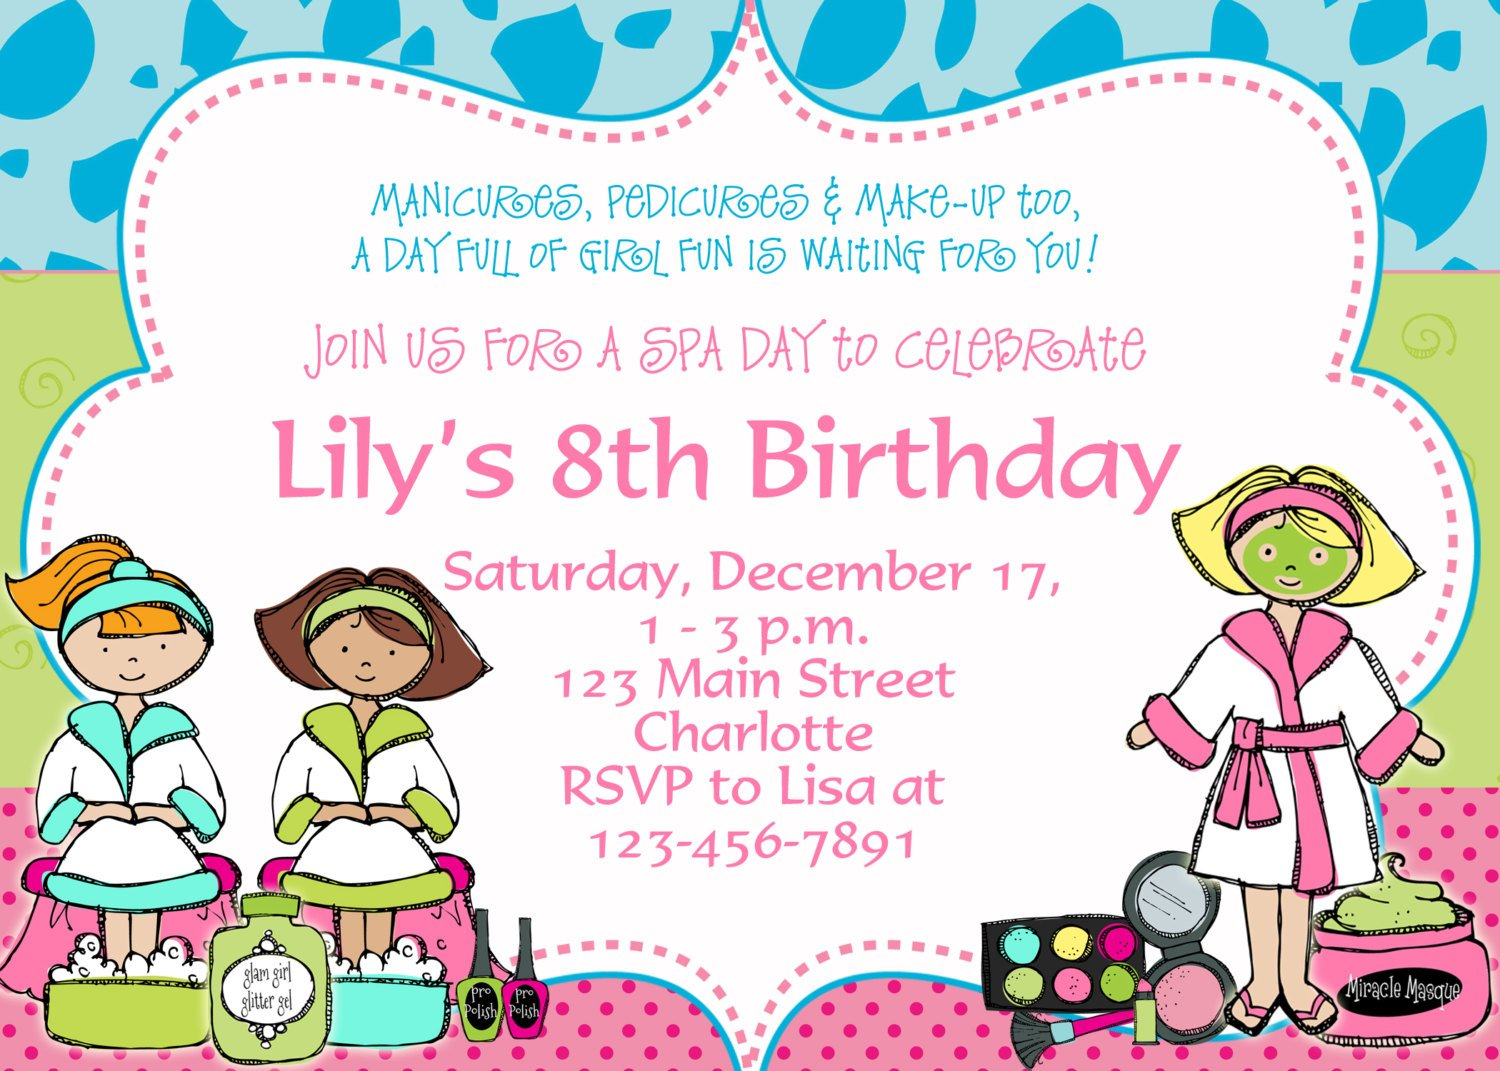 Free Birthday Party Invitation Templates | FREE Invitation Templates ...